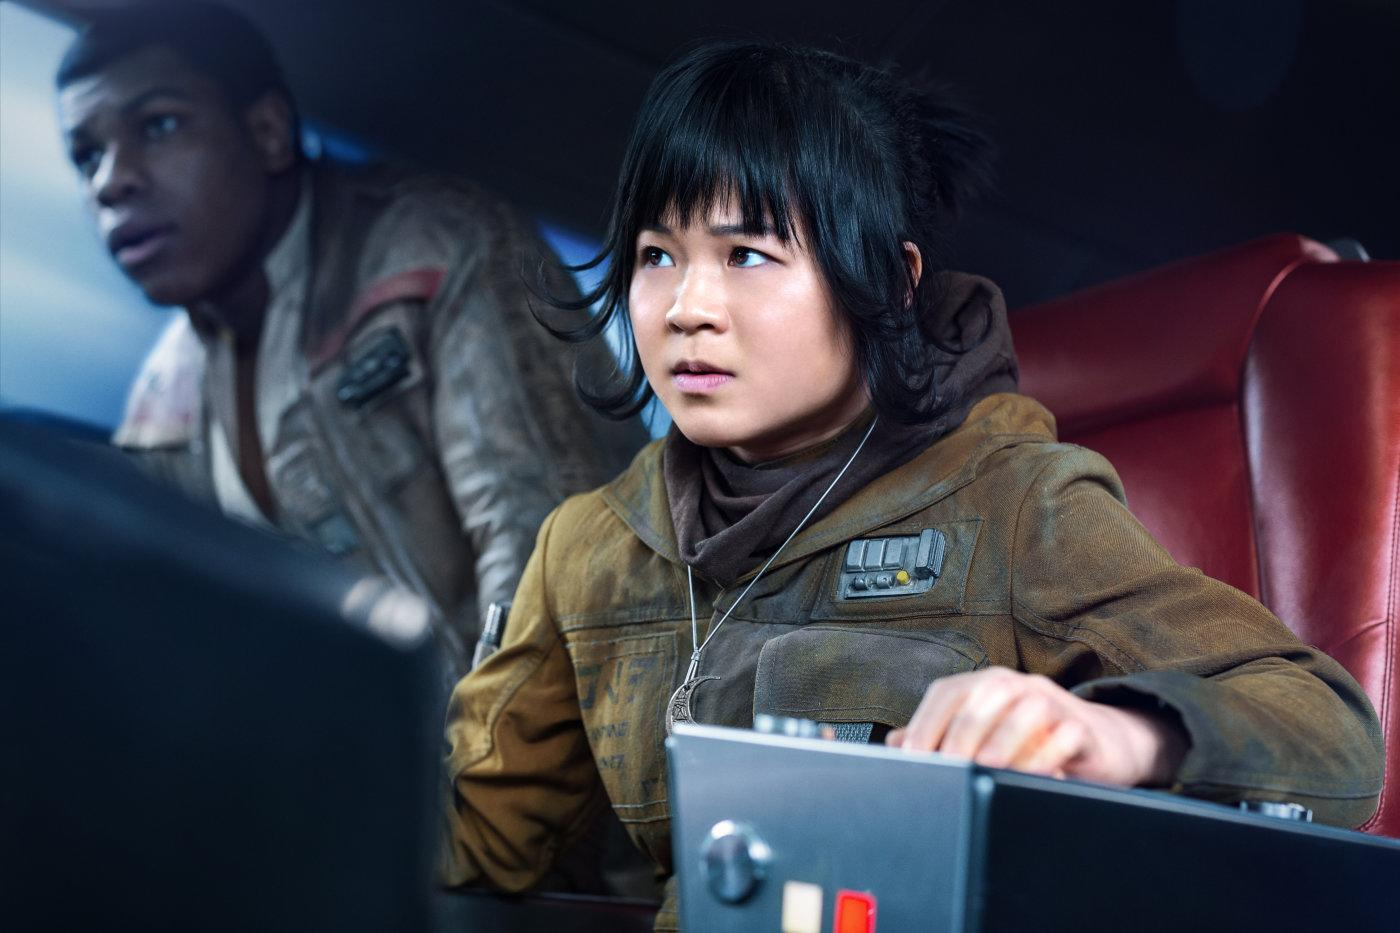 'Star Wars' writer on why Rose Tico featured so little in 'Rise of Skywalker'